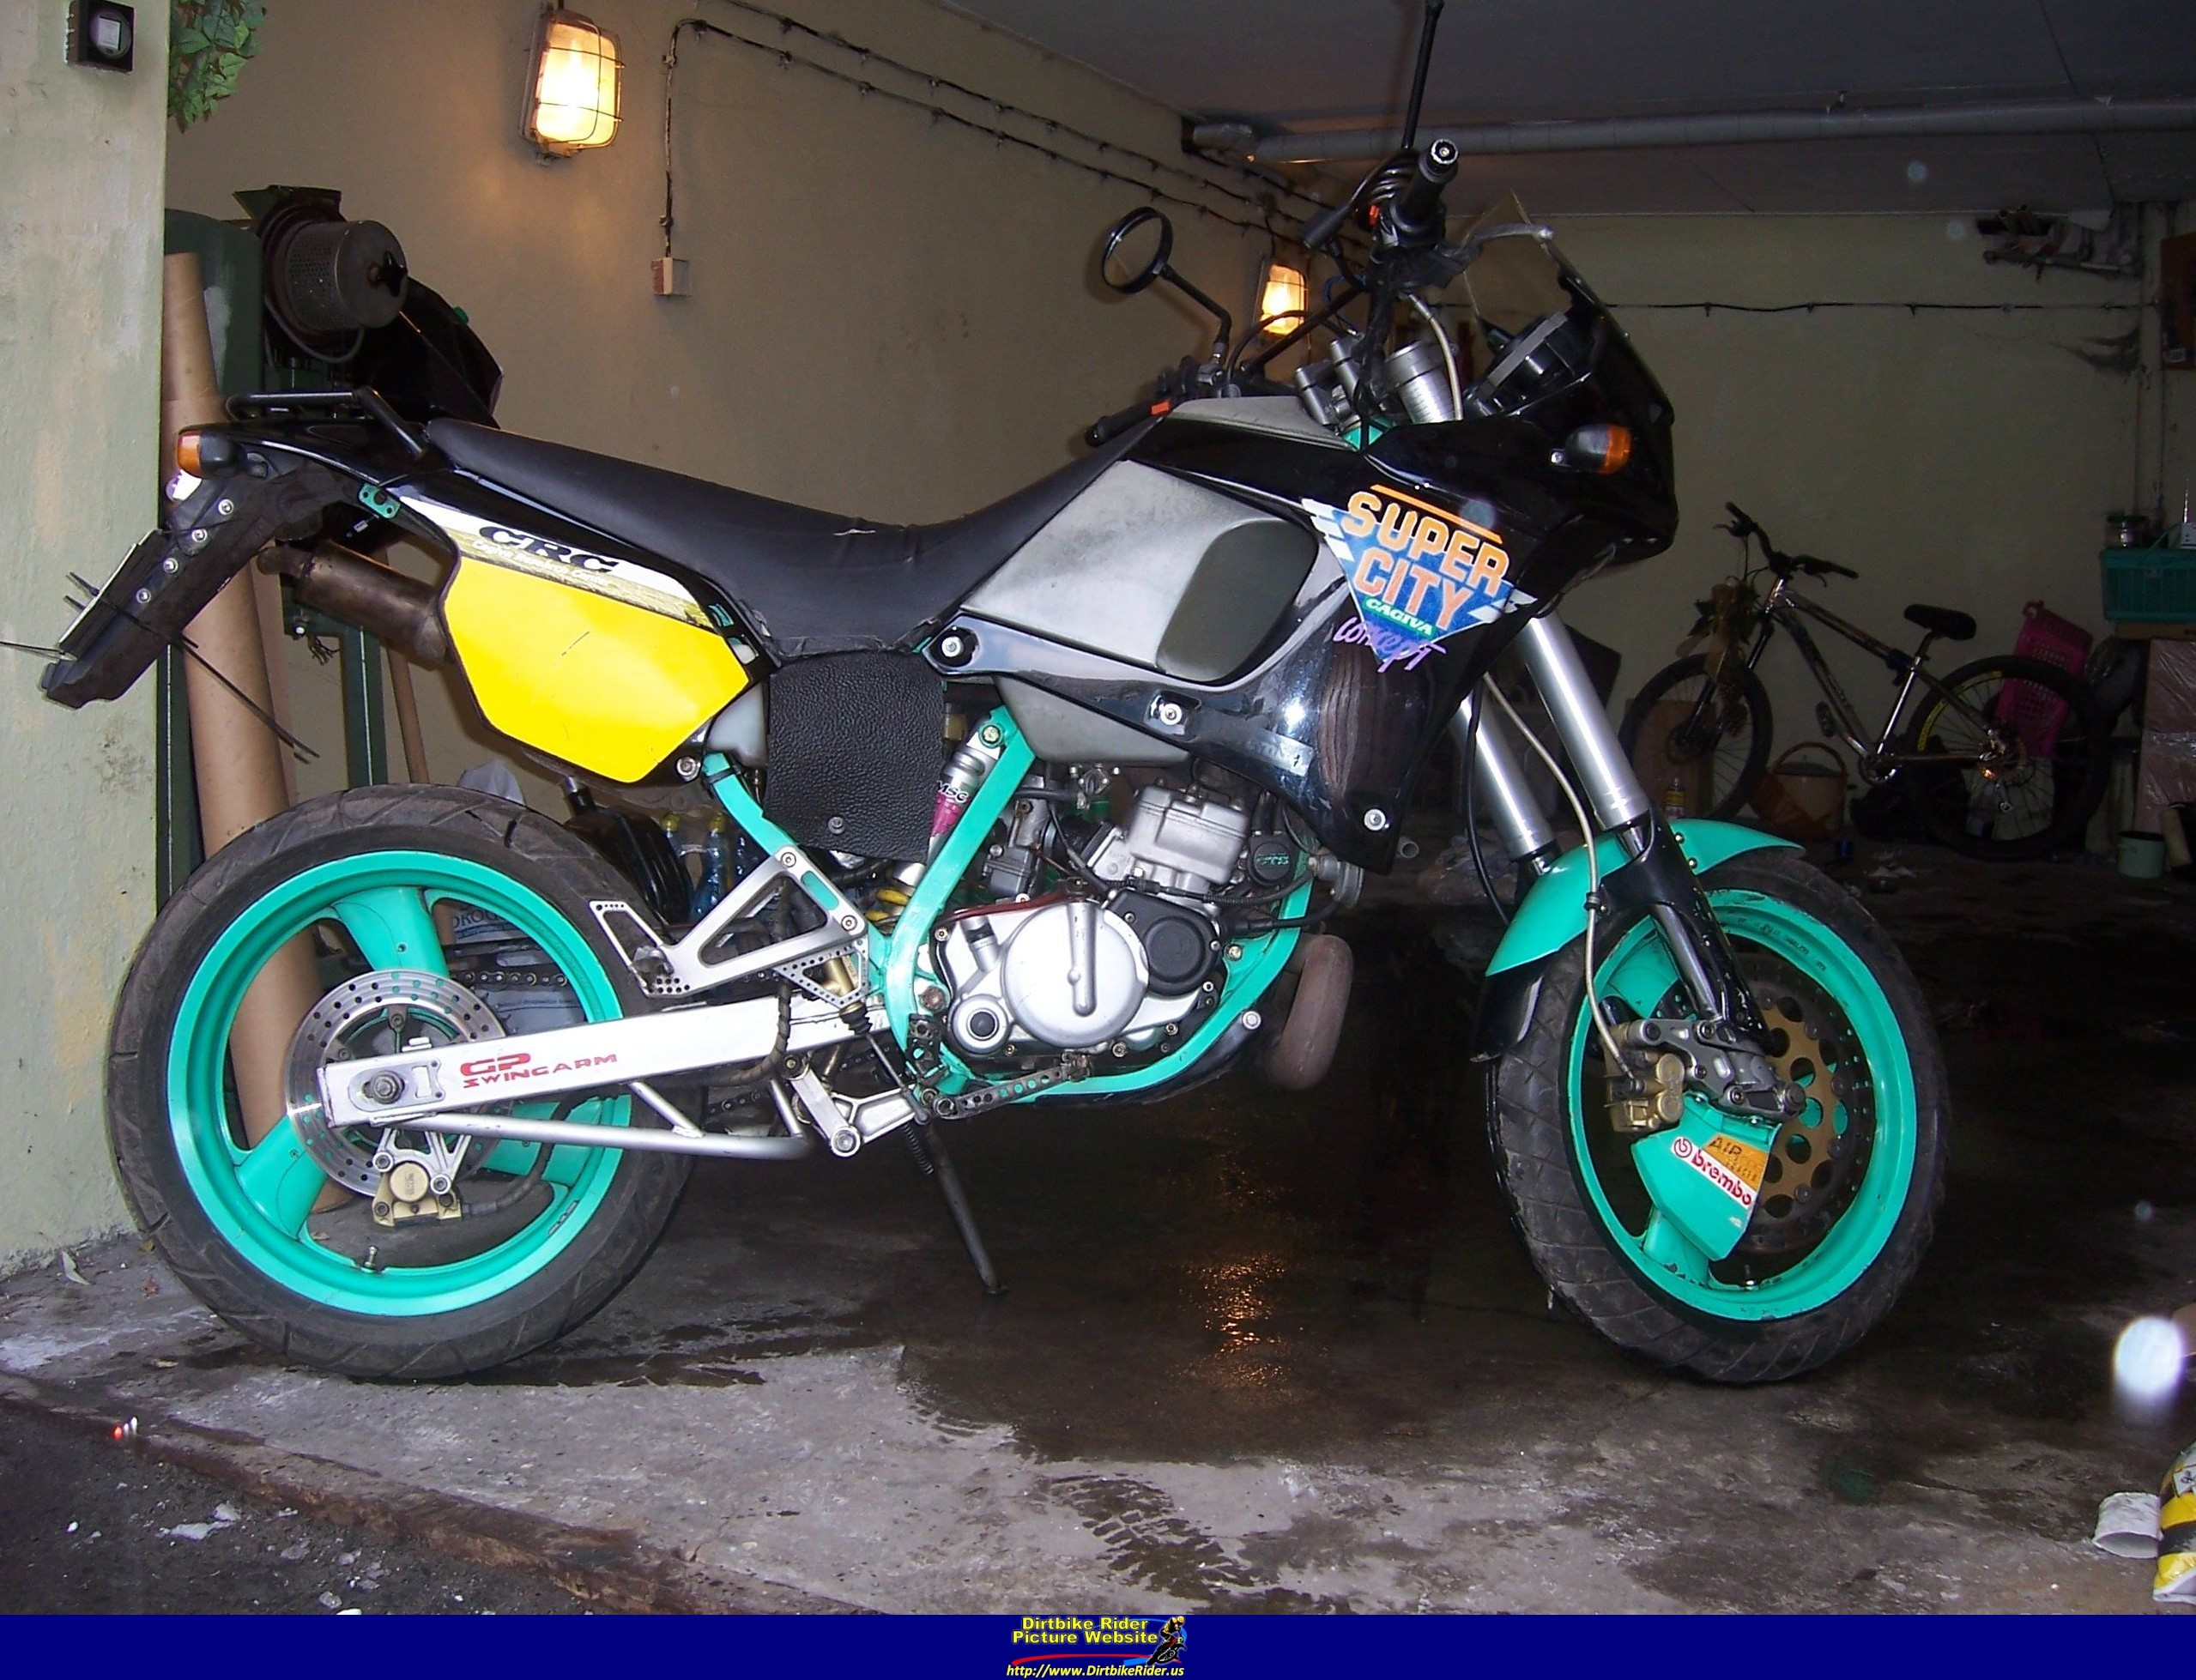 Cagiva Super City 125 1998 images #67346